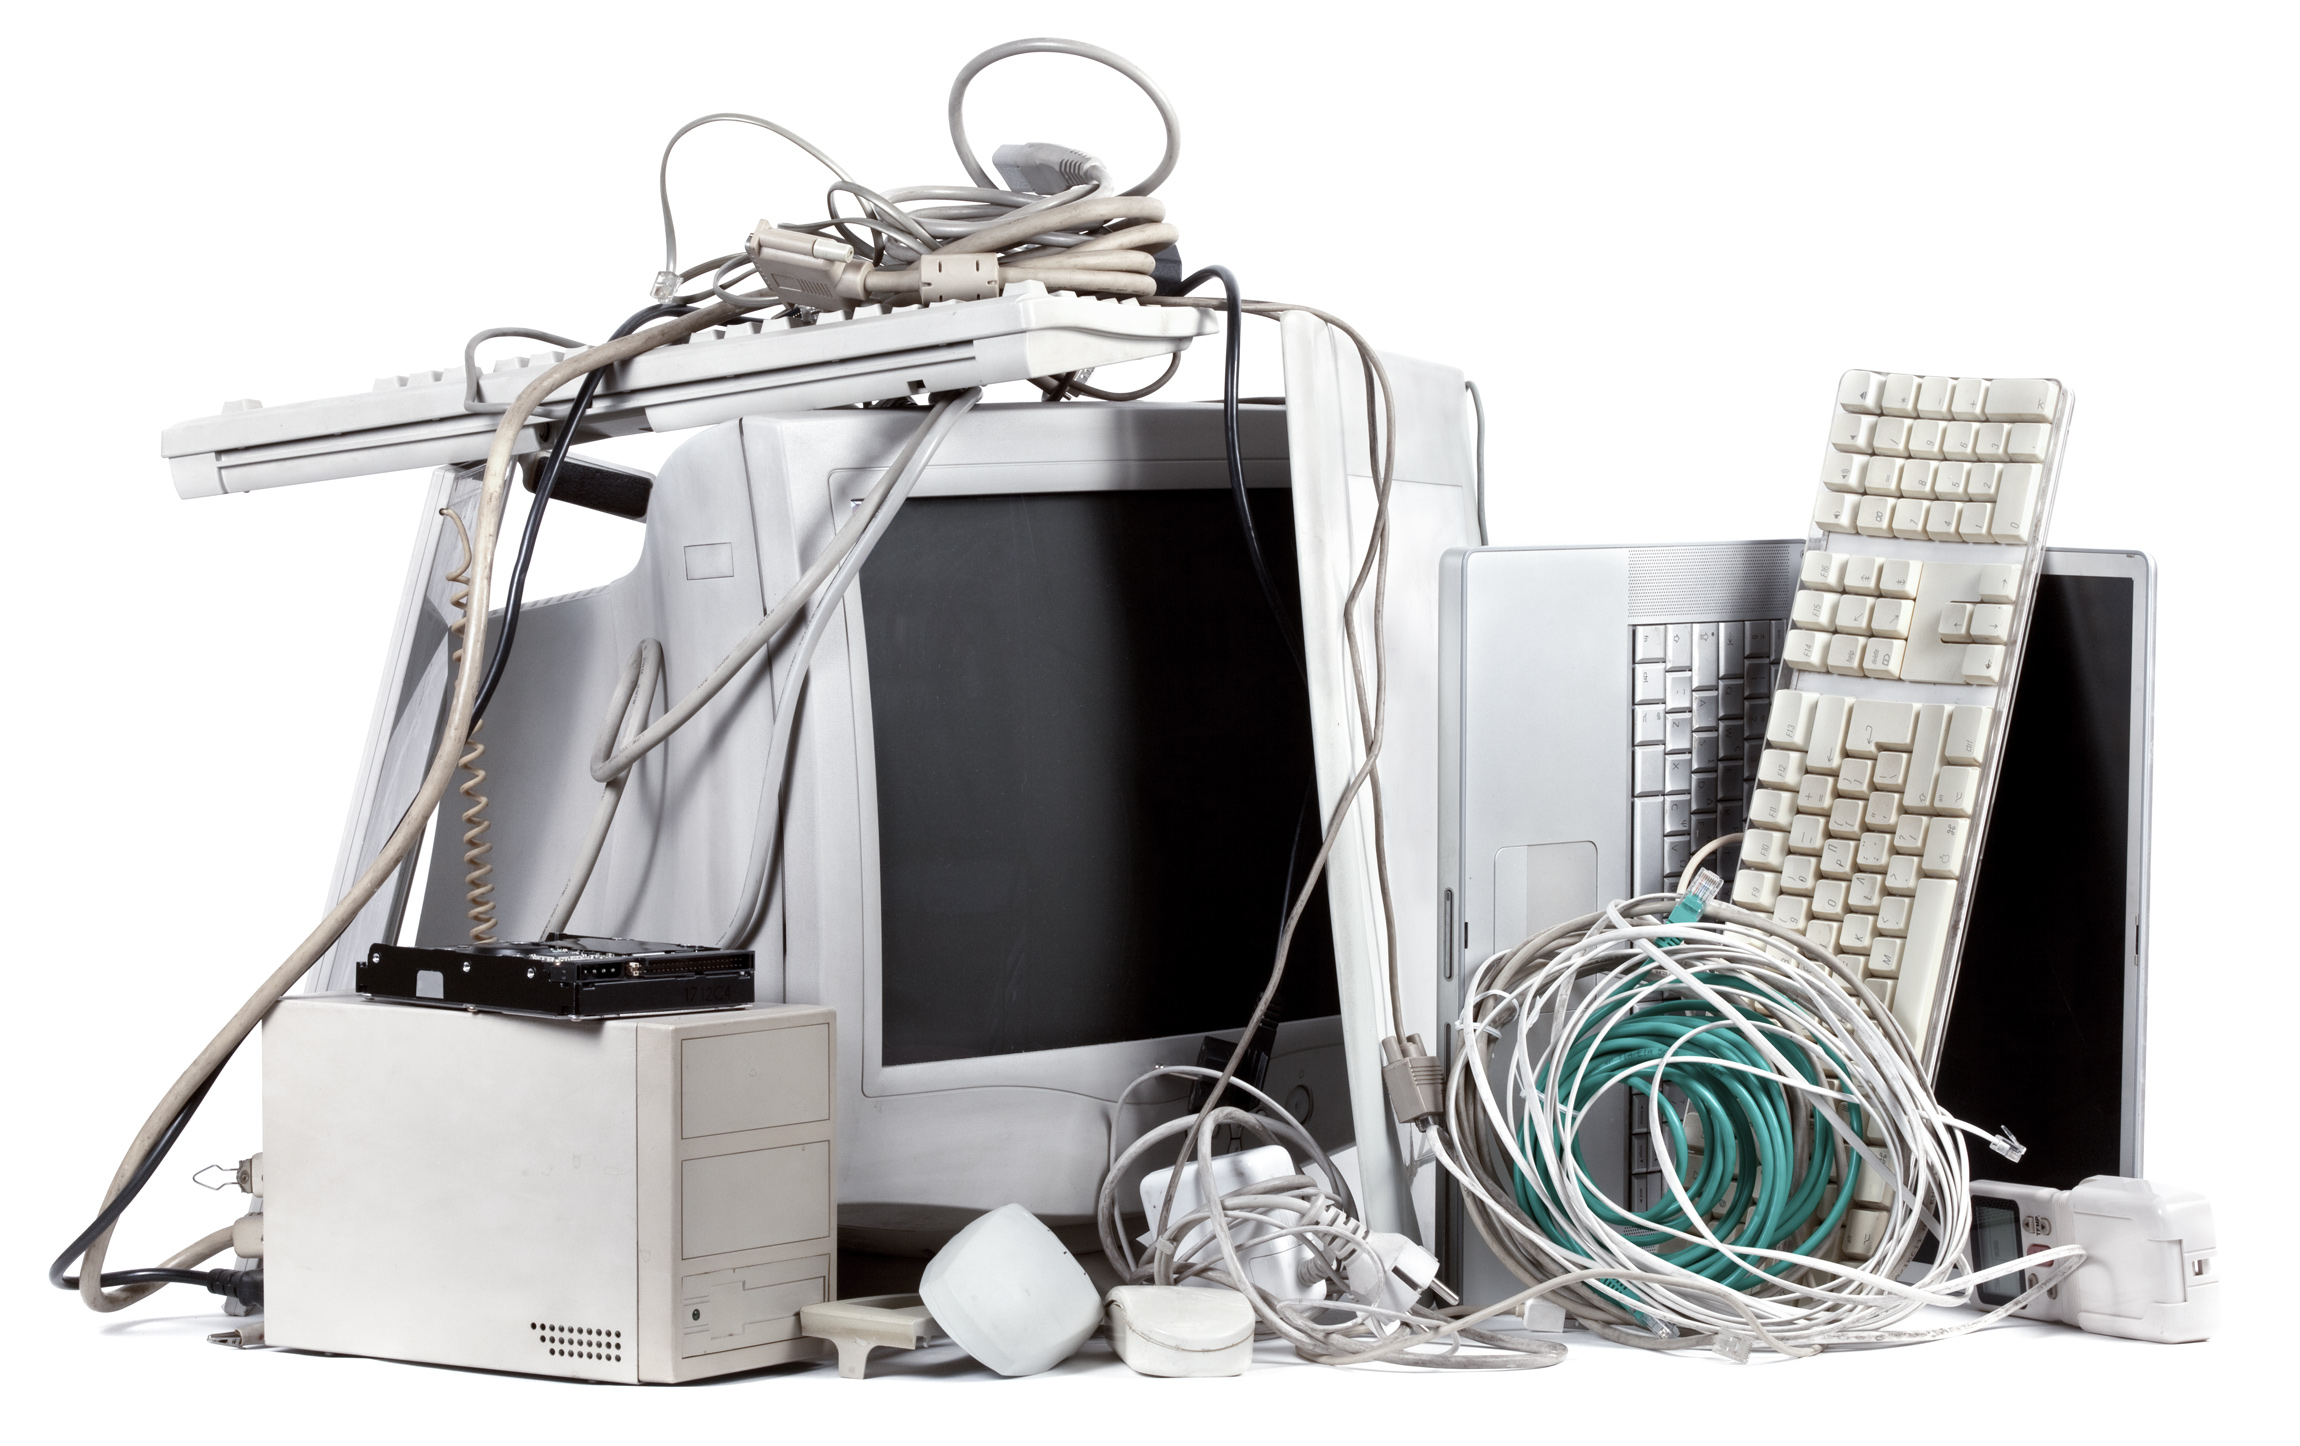 Computer, mouse, keyboard, cables, electronic waste, e-scrap, WEEE